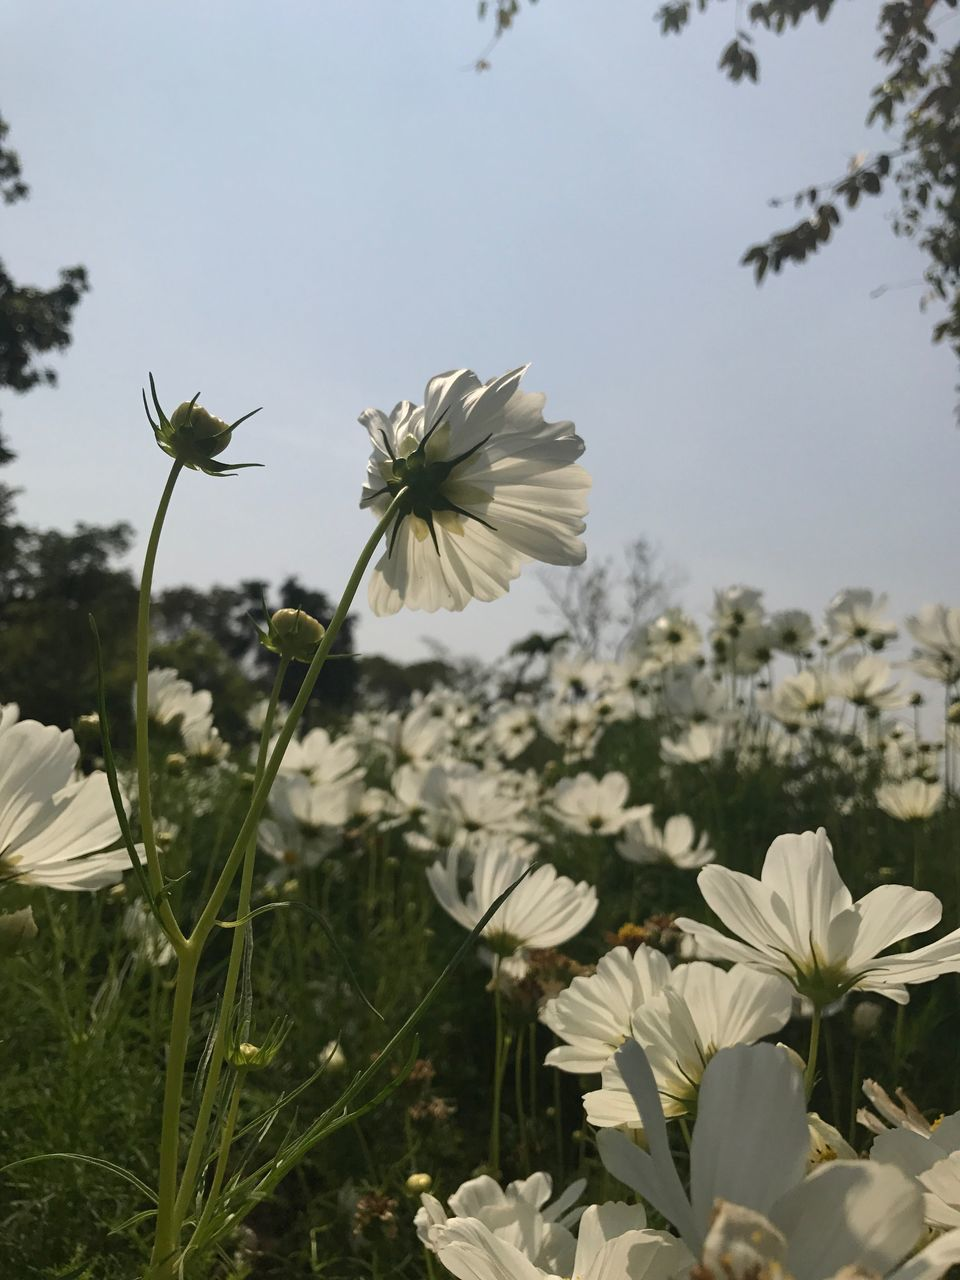 flower, fragility, beauty in nature, nature, growth, petal, freshness, white color, flower head, plant, no people, blooming, day, outdoors, close-up